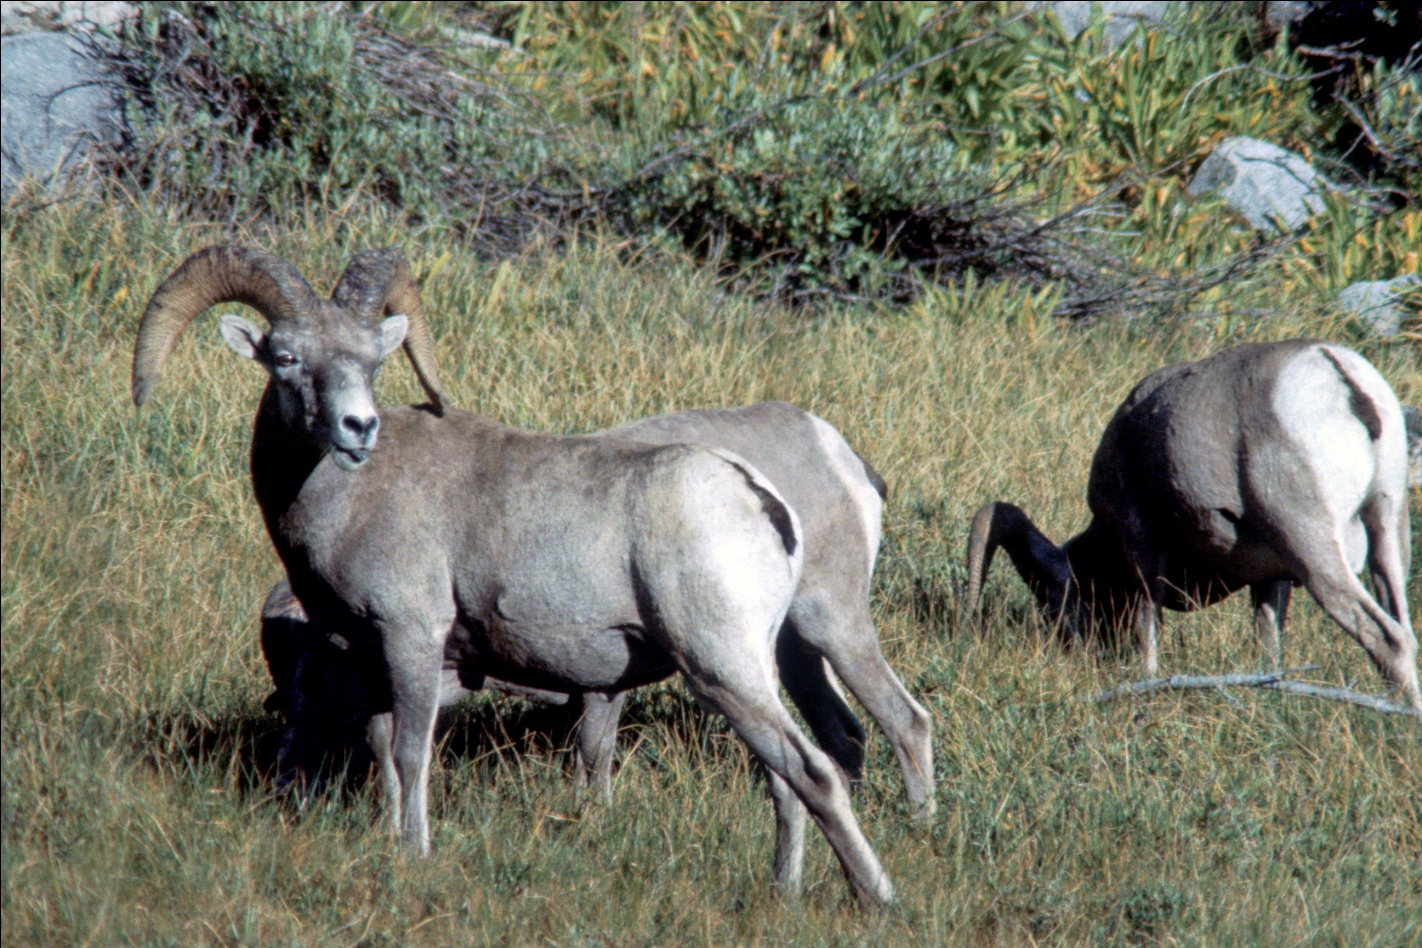 Endangered Sierra Nevada Bighorn Sheep Restored To Yosemite And Sequoia National Parks Sequoia Kings Canyon National Parks U S National Park Service